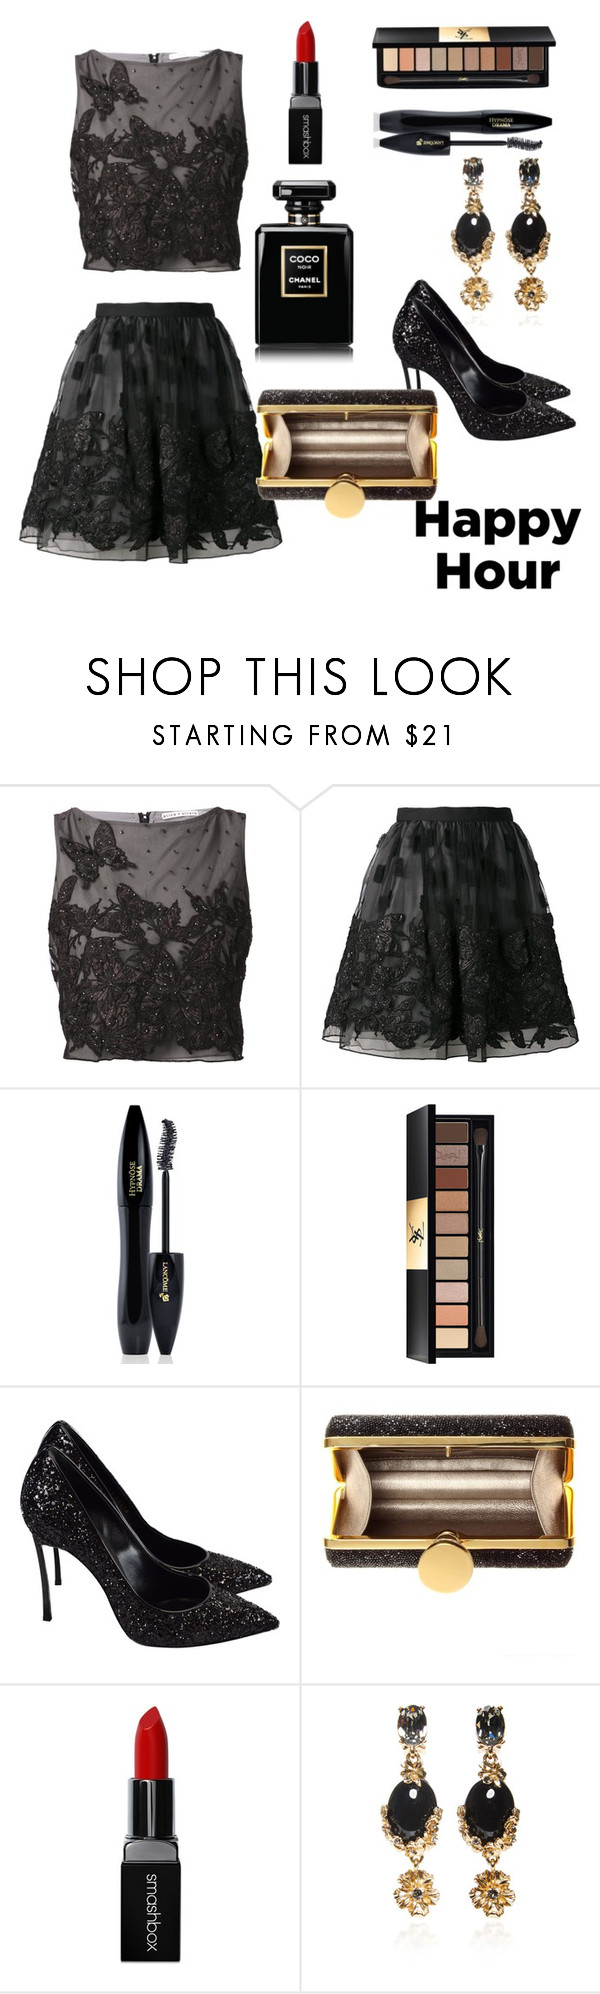 """HAPPY HOUR"" by prettyangel-1 ❤ liked on Polyvore featuring Alice + Olivia, Lancôme, Yves Saint Laurent, Casadei, Tom Ford, Smashbox and Oscar de la Renta"